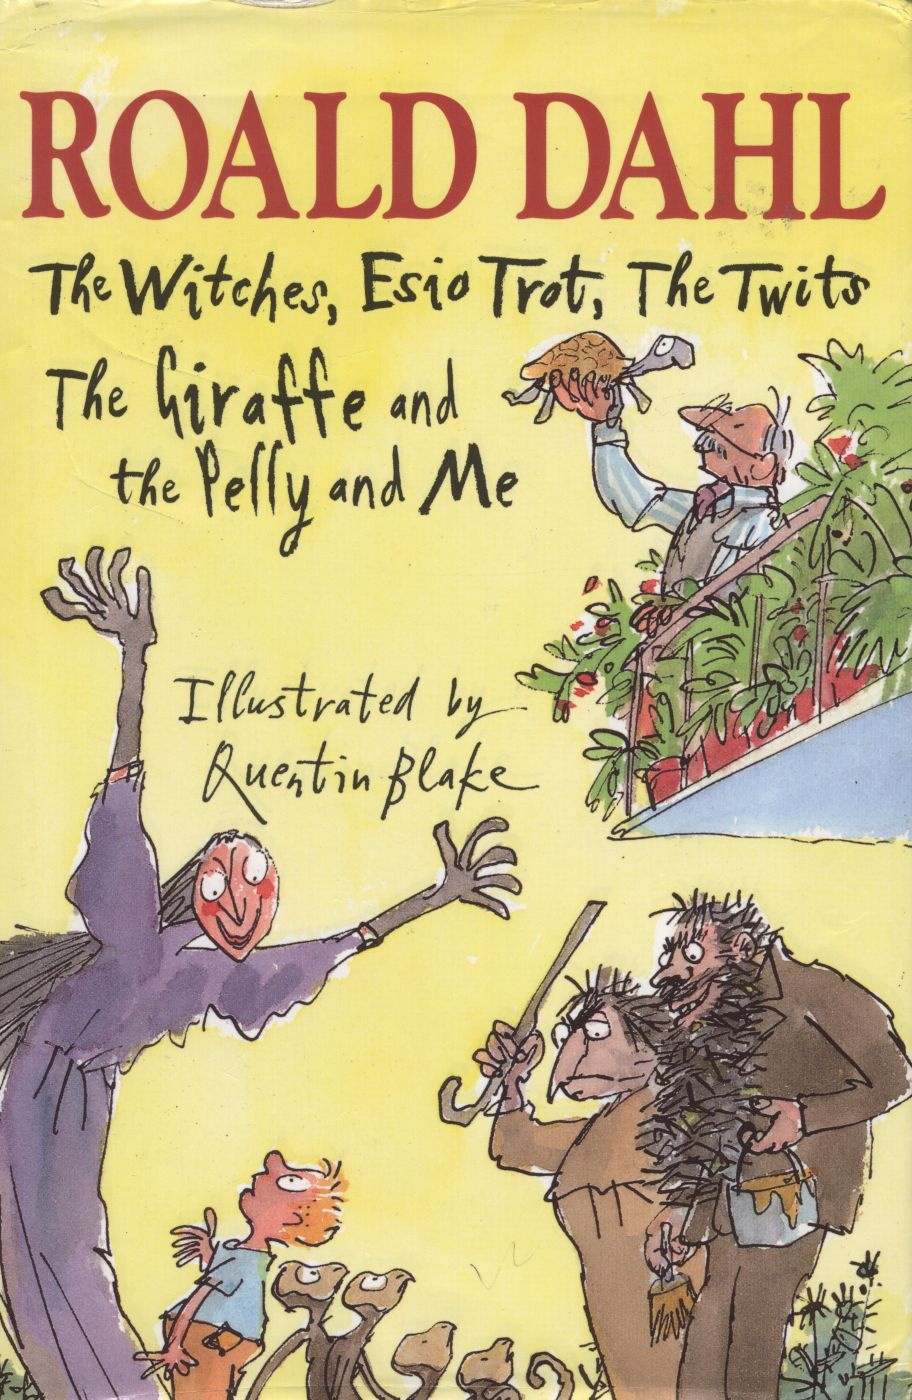 The Witches, Esio Trot, The Twits, The Giraffe and the Pelly and Me